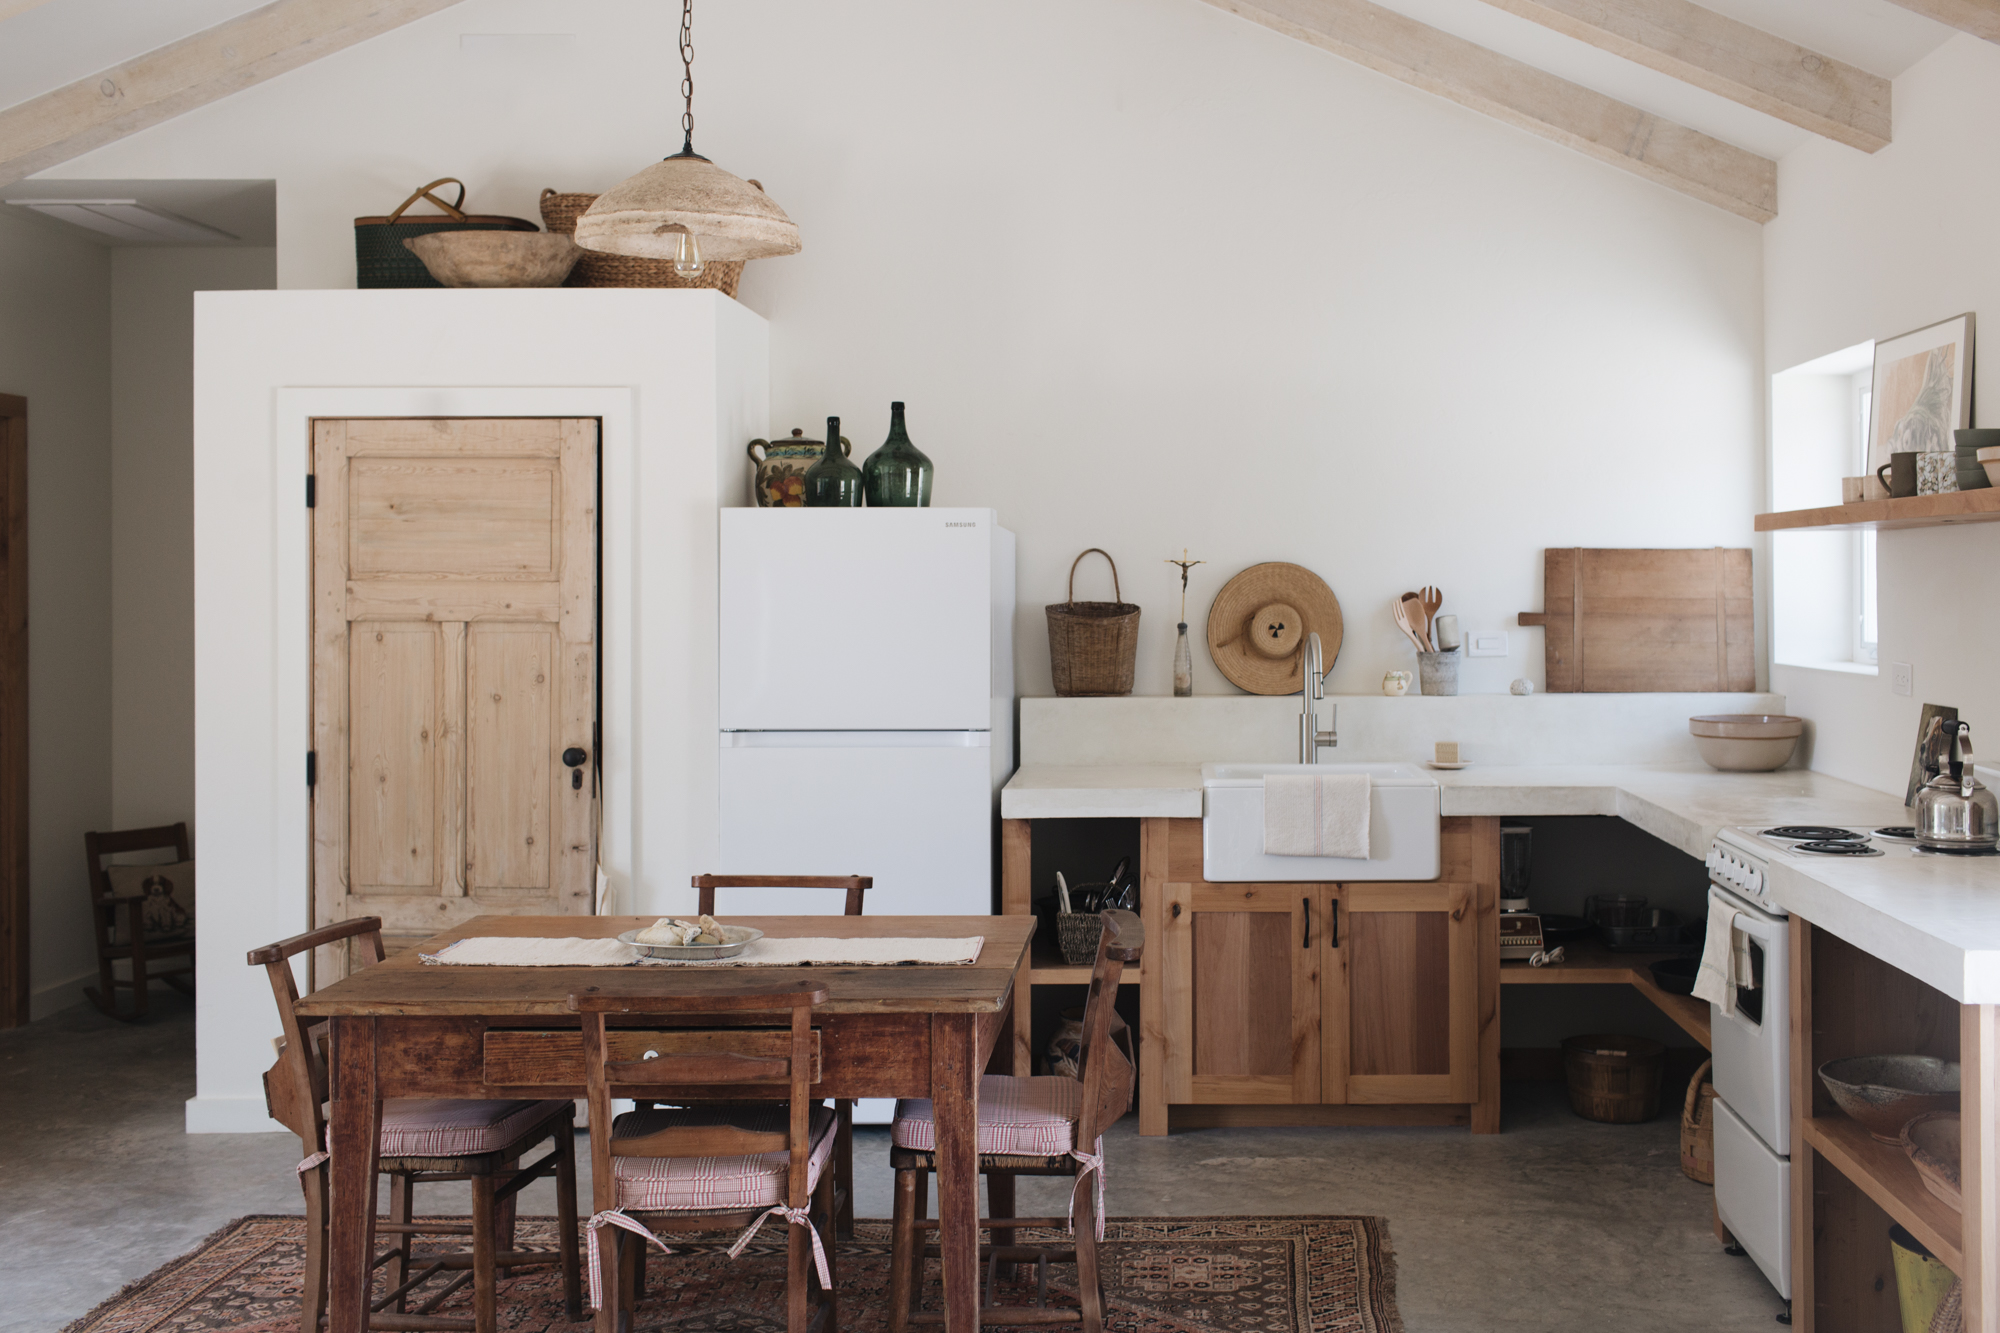 deconstructed kitchens // Kate Zimmerman Turpin via Camille Styles // via the Grit and Polish